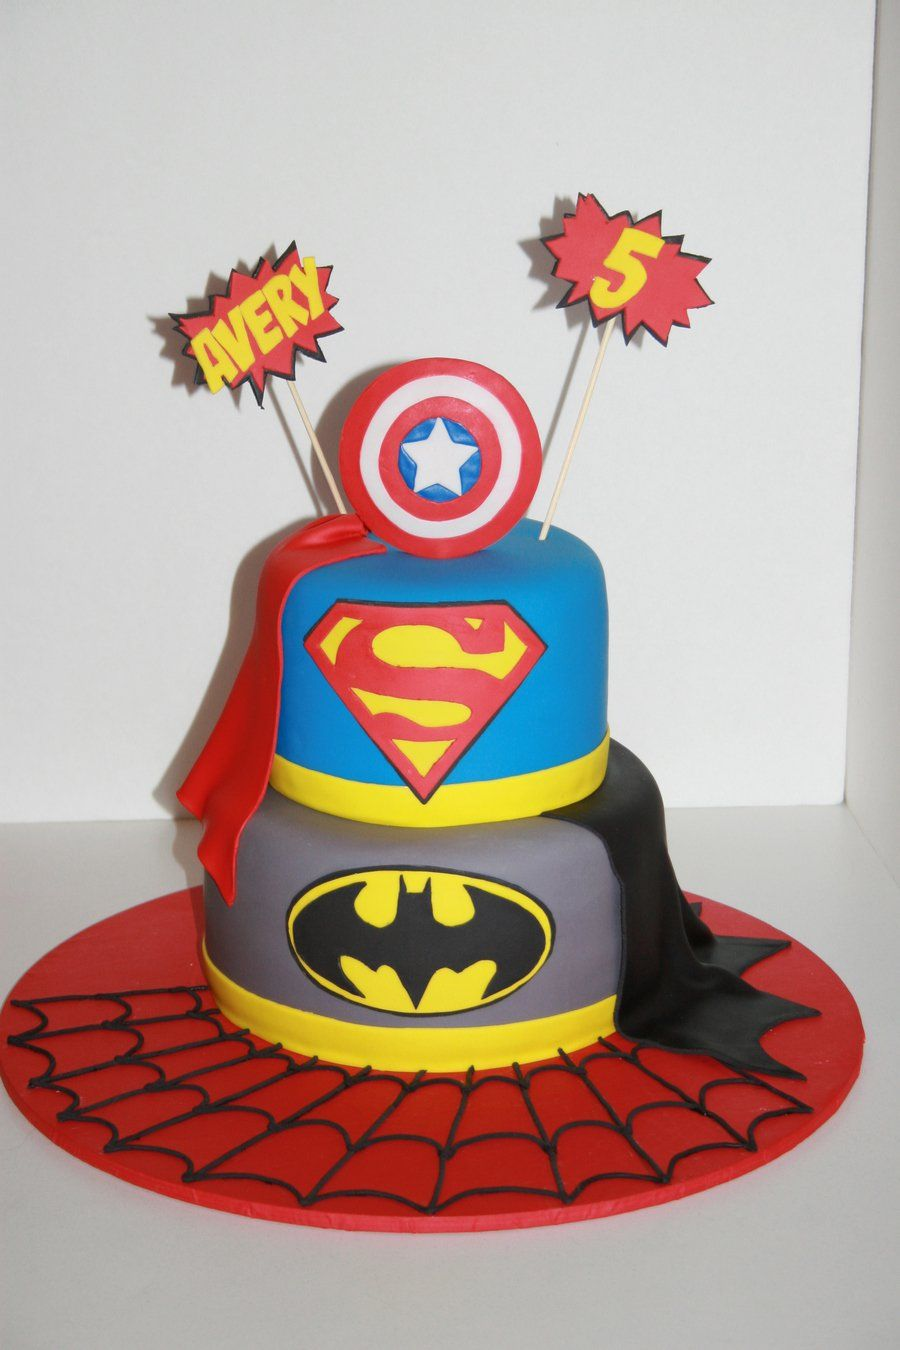 Super Hero Birthday Cake On Cake Central Superhroes Pinterest